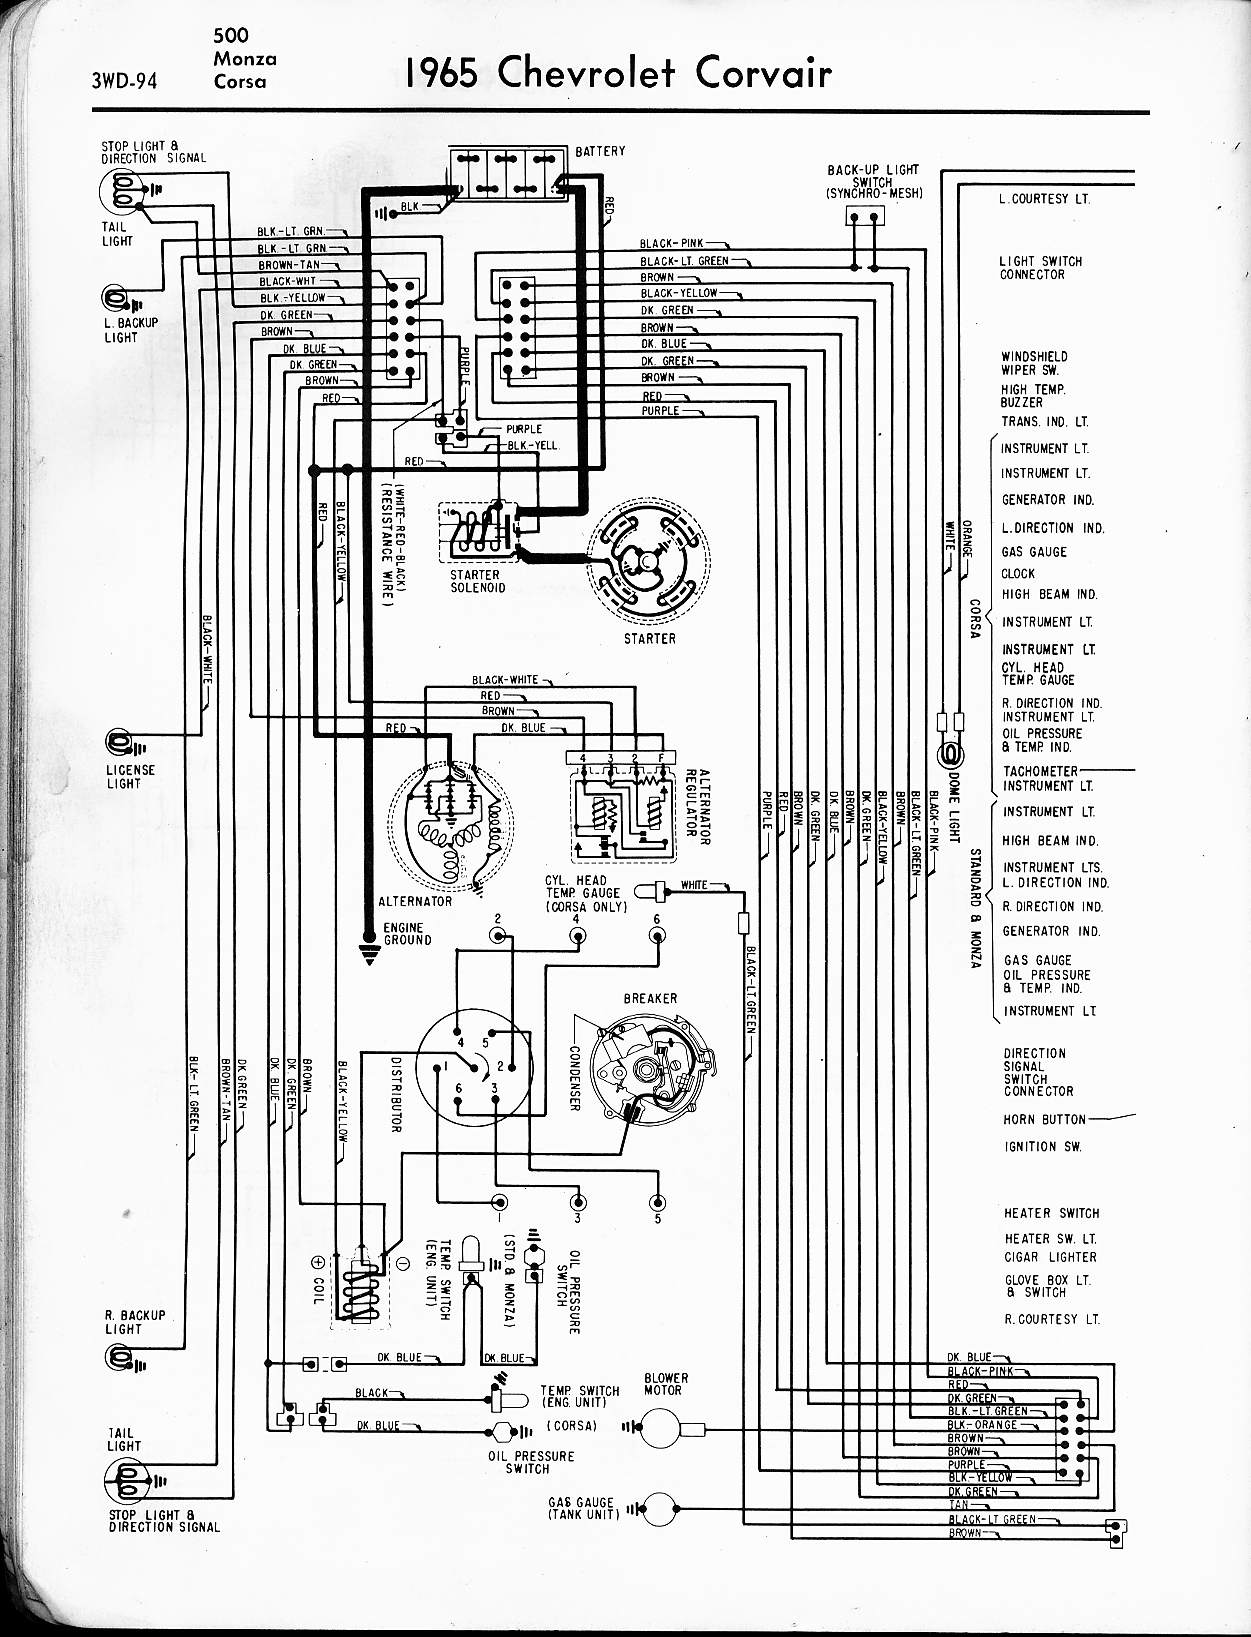 57 65 Chevy Wiring Diagrams Site 1965 Corvair 500 Monza Corsa Left